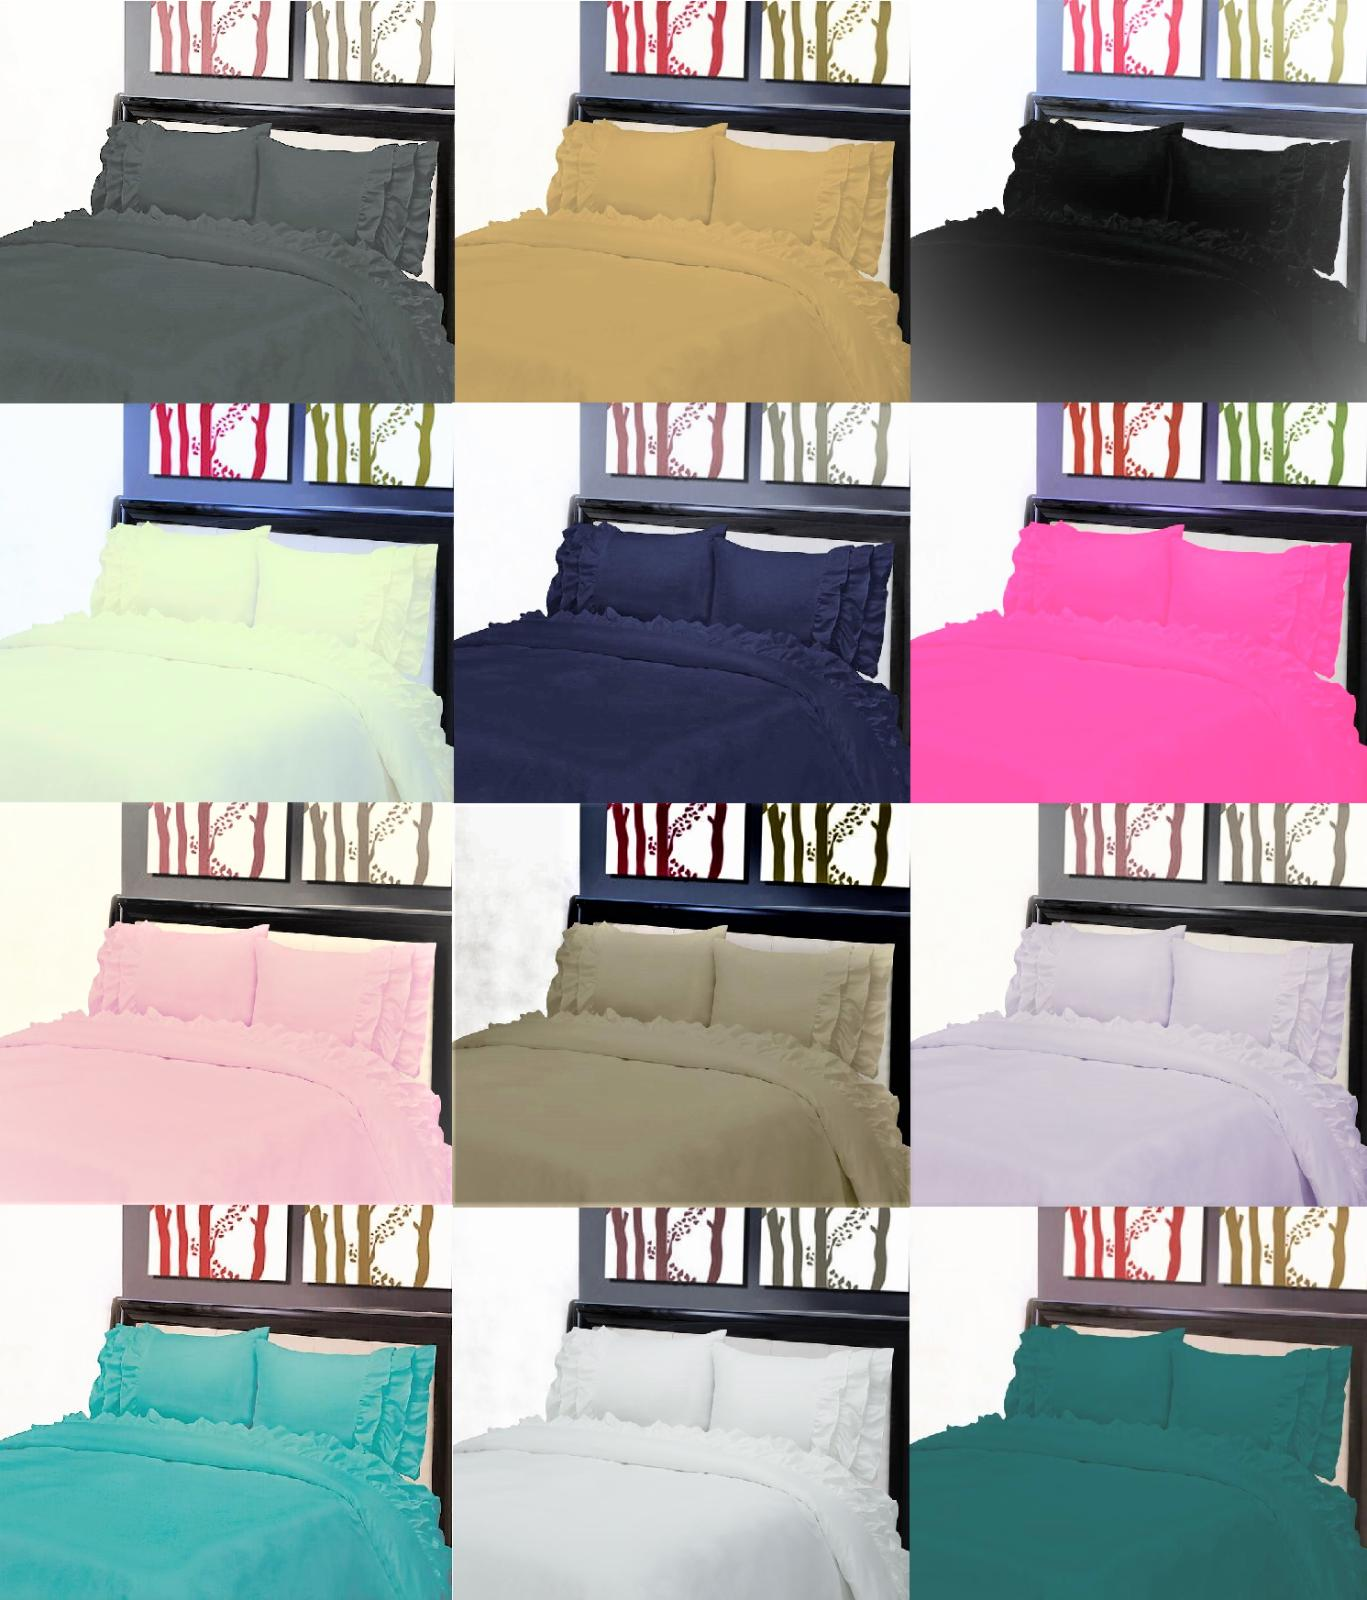 new gypsy style microfiber pillow cases flat